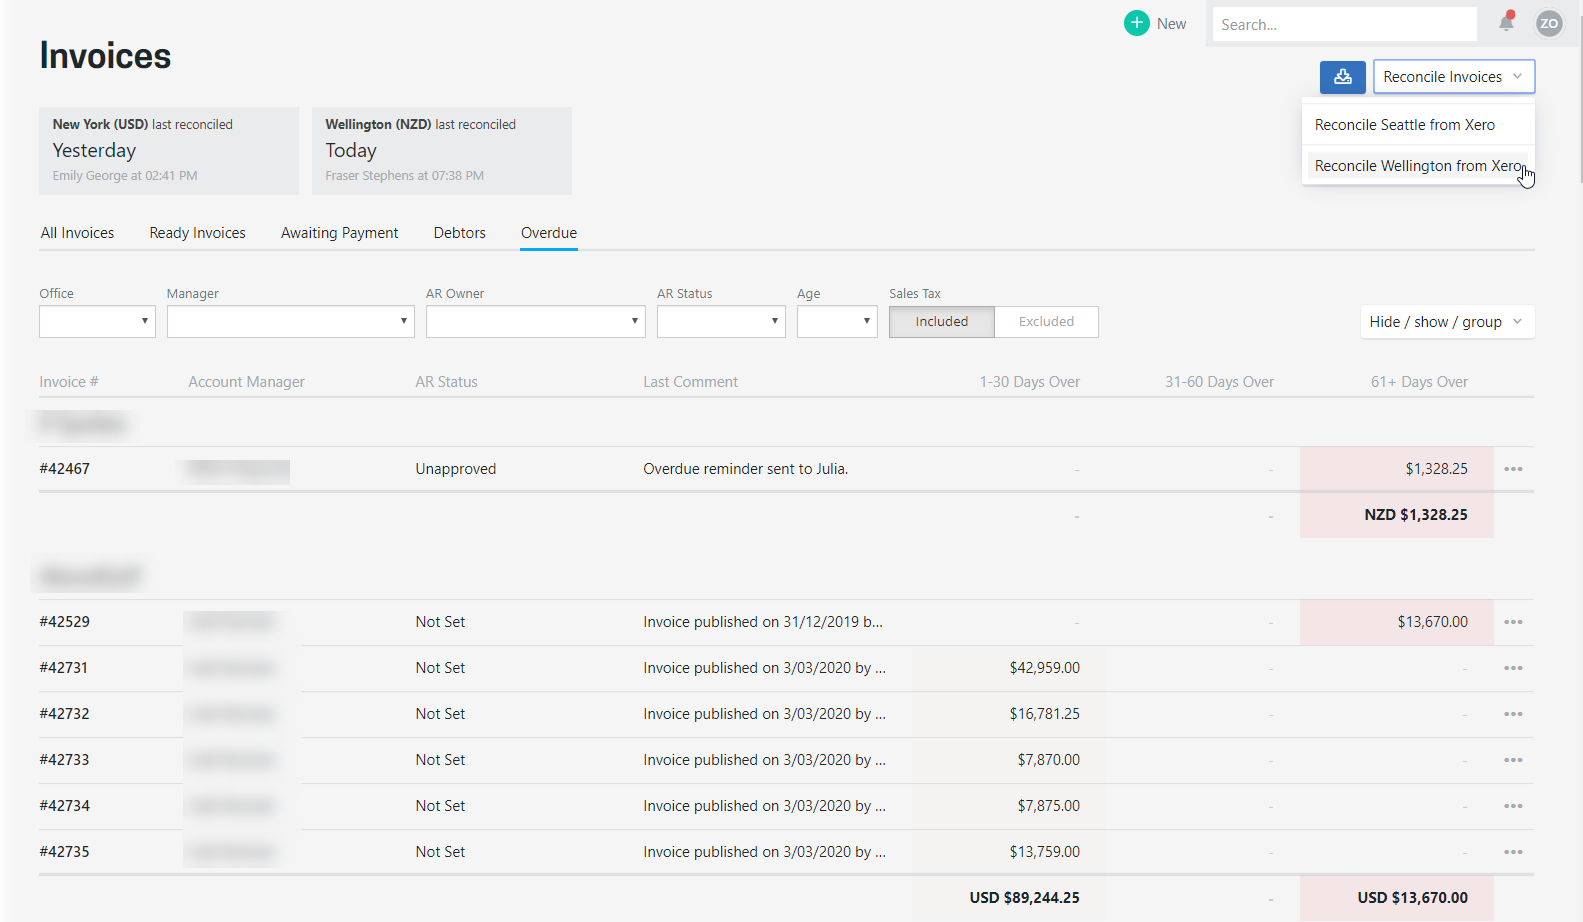 See all invoices whtih are overdue, grouped how you want to see them